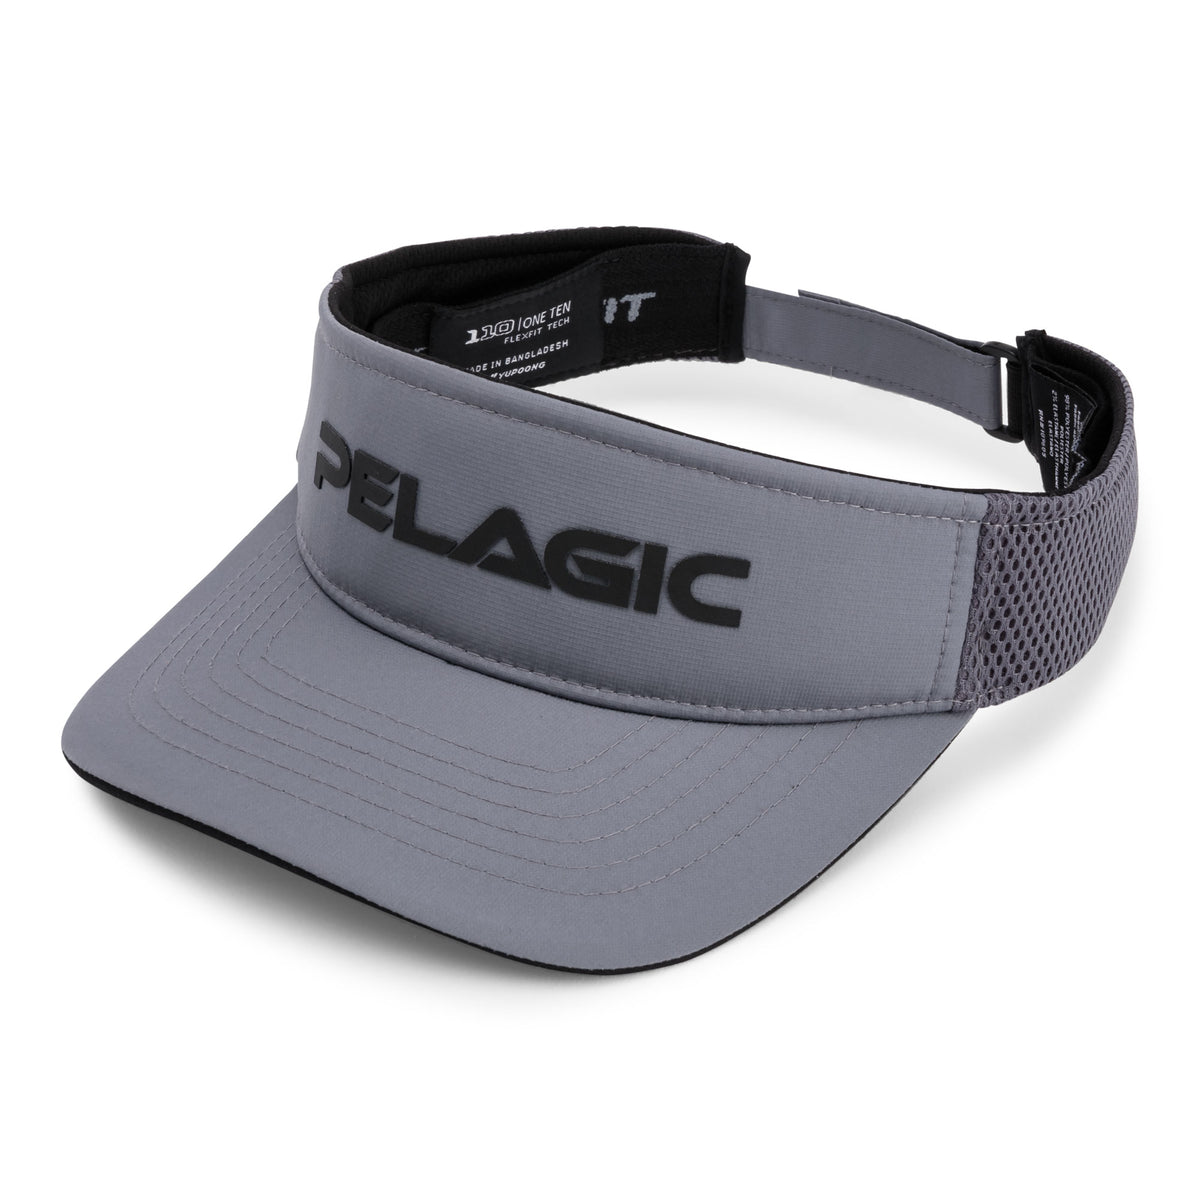 Flexfit Pro Fishing Visor Big Image - 1